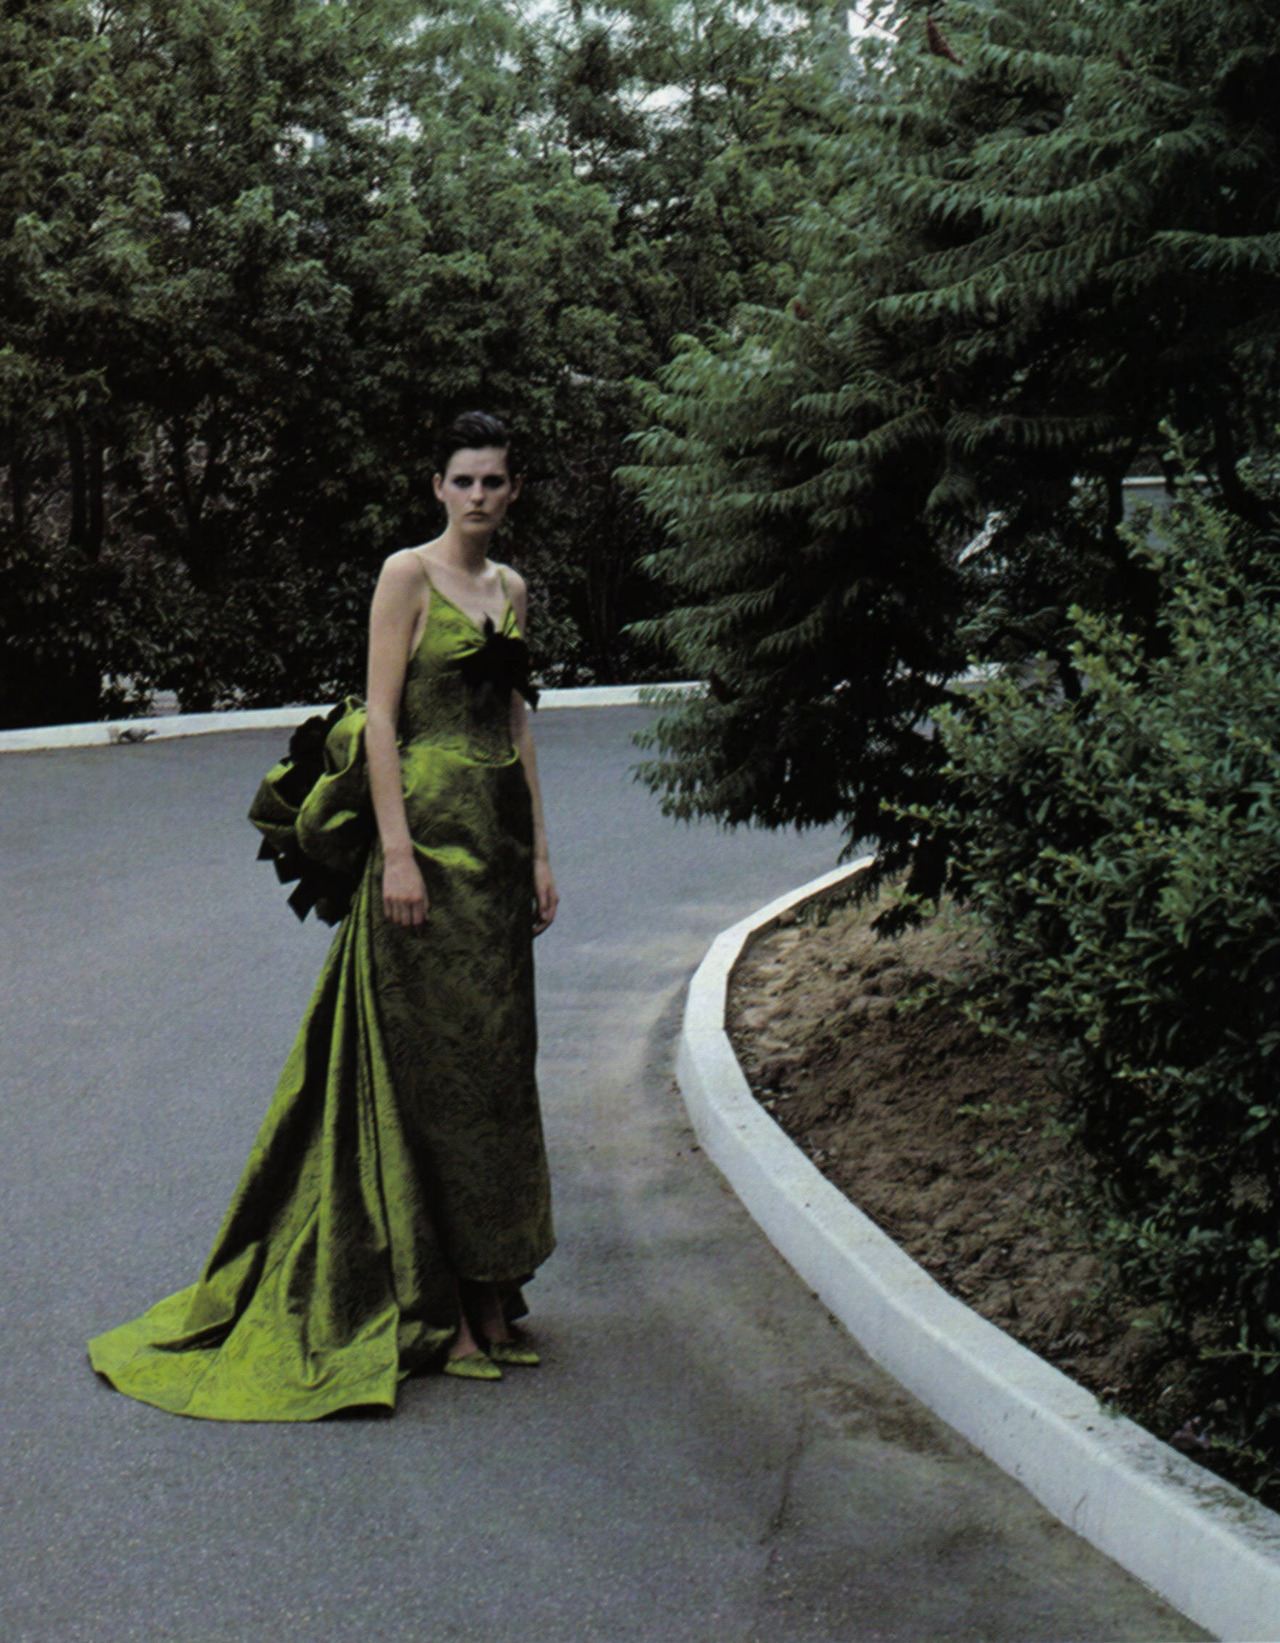 Ball Gowns. Stella Tennant in Nina Ricci Fall 1995 haute couture, photographed by Mark Borthwick for Vogue Italia, September 1995.